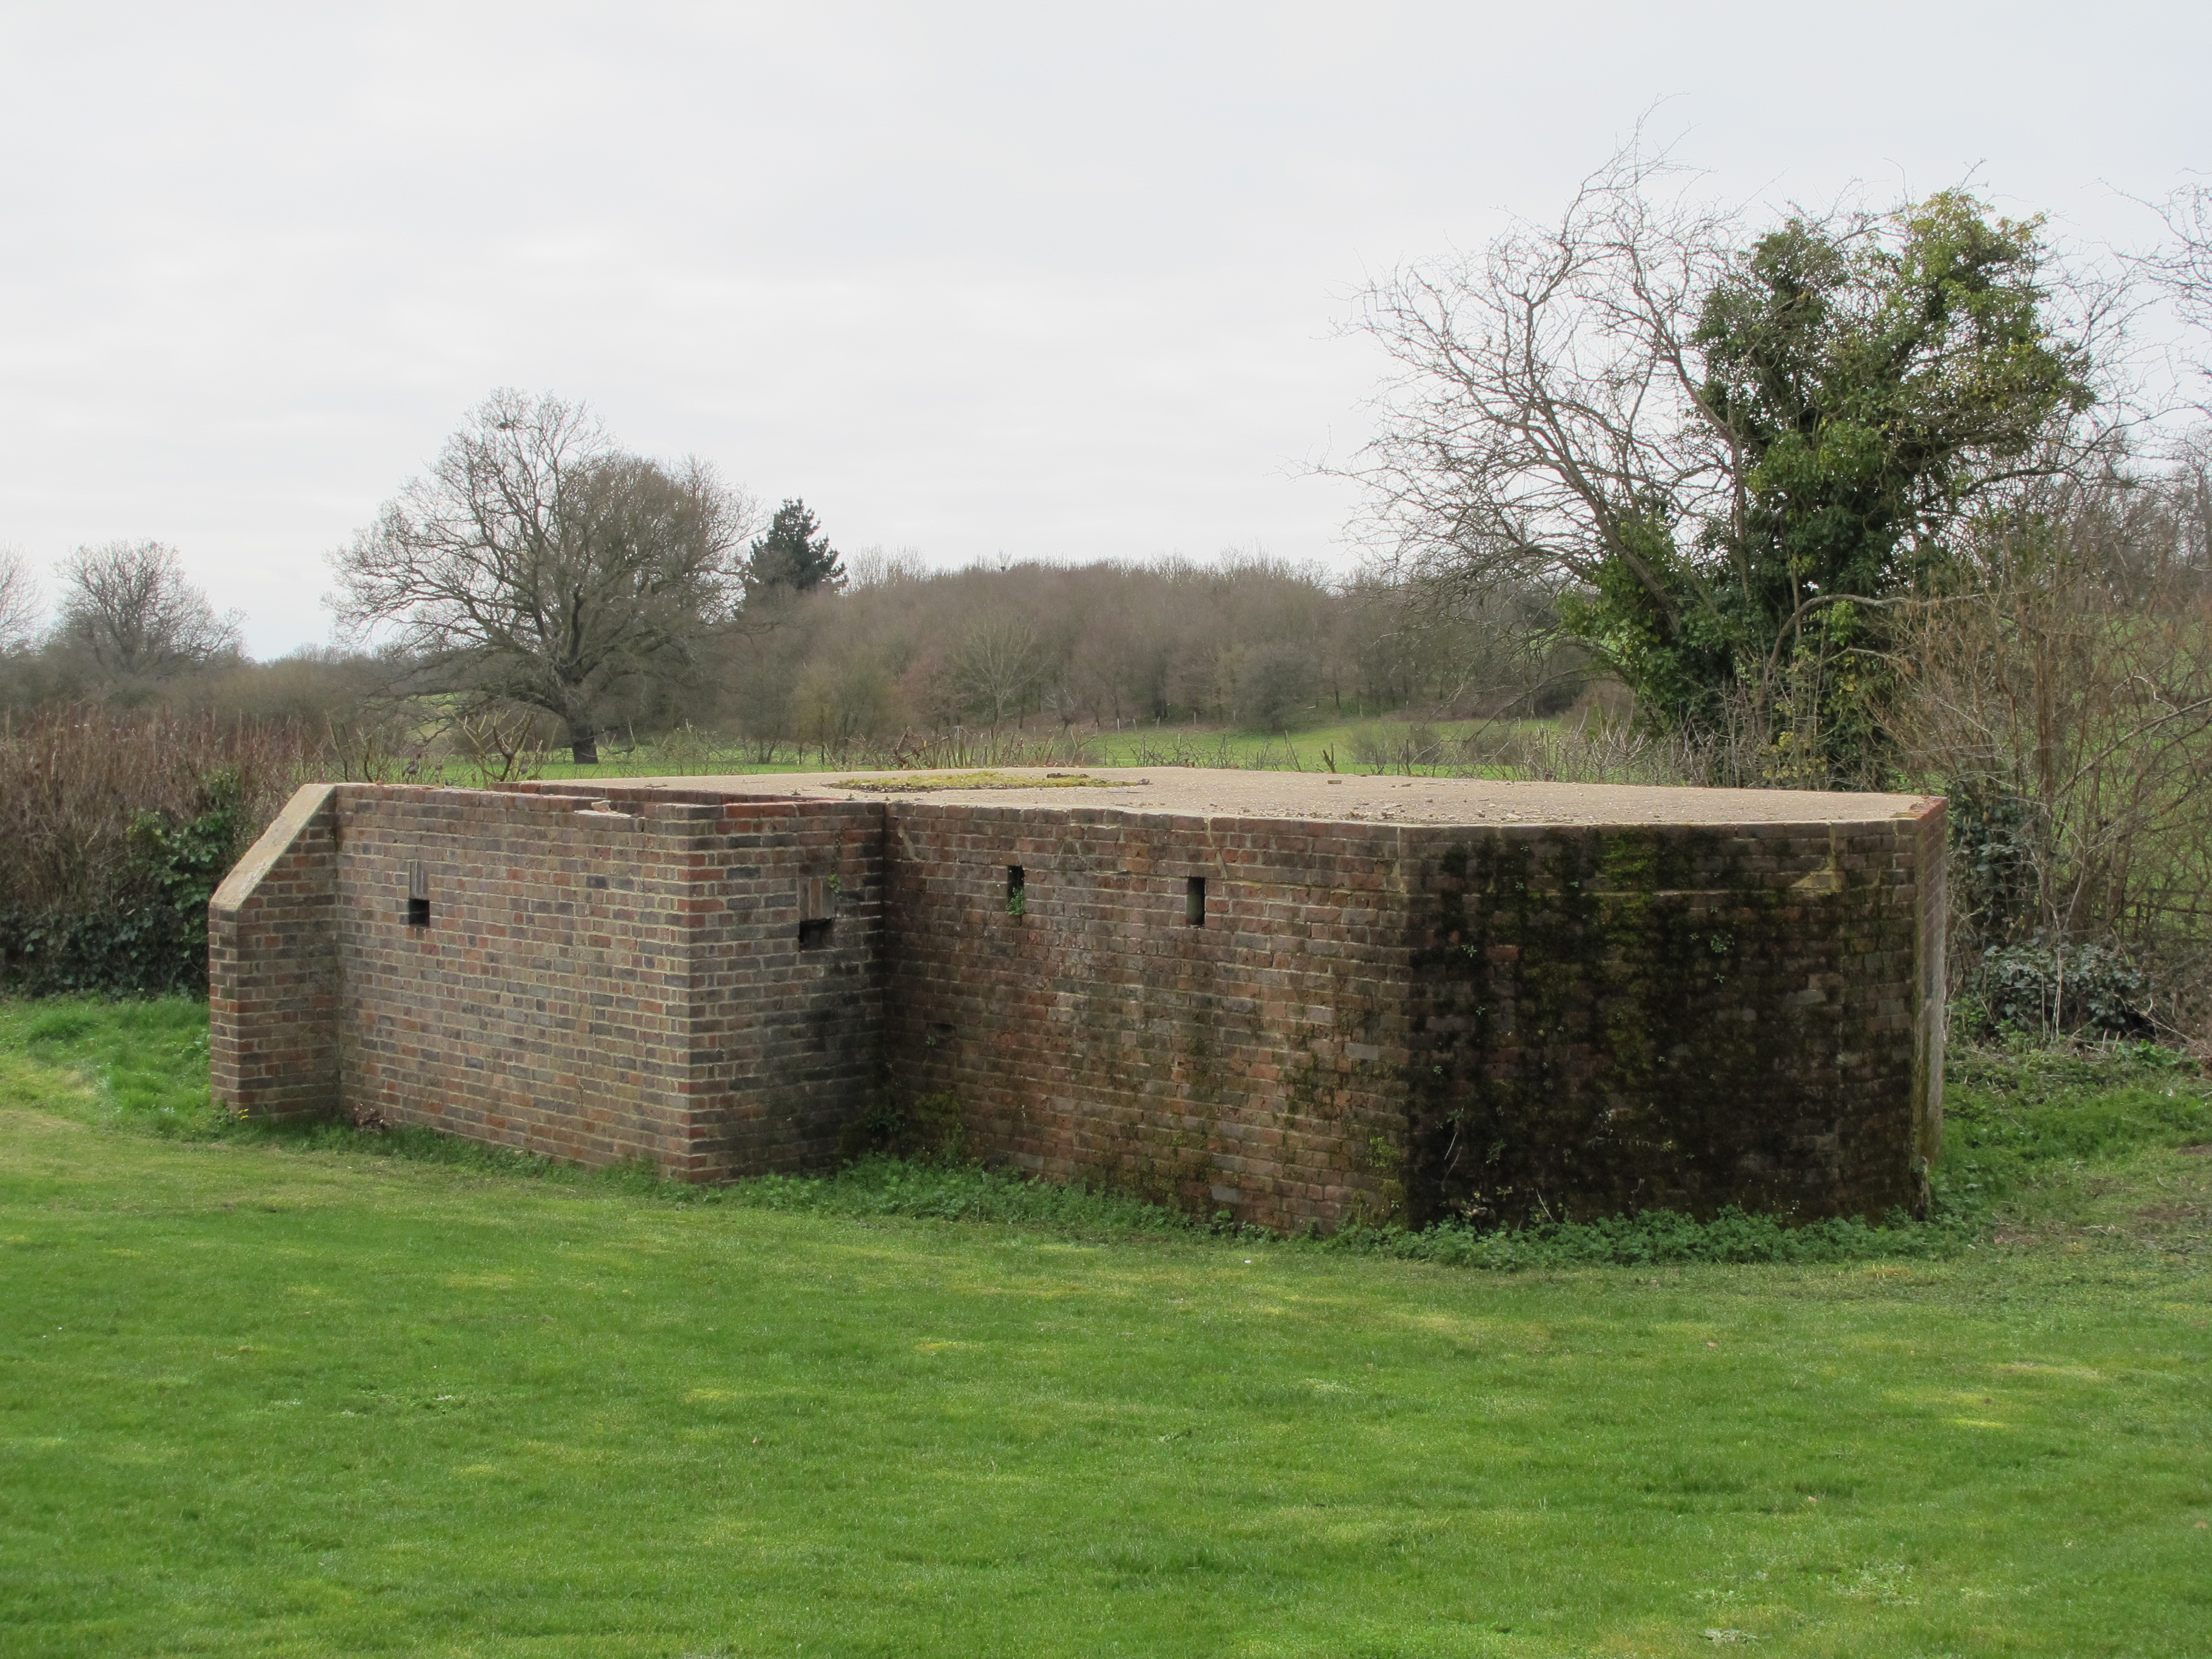 Rear view showing blastwall with two loopholes, note narrow vertical smoke/fume vents at top of the pillboxes rear wall